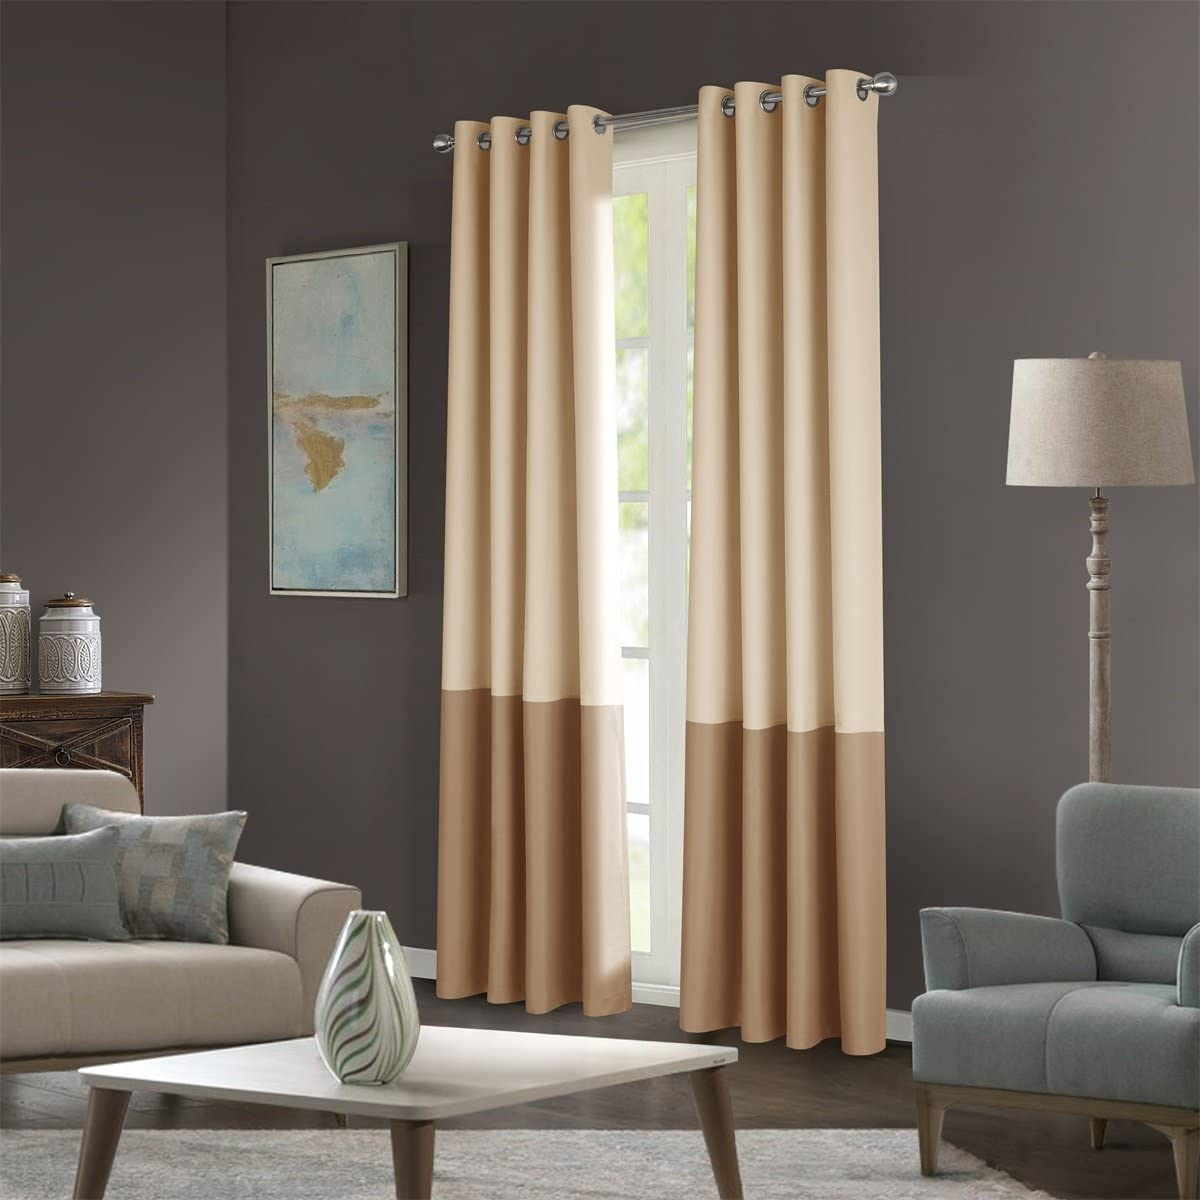 Dreaming Casa Color Block Two Tones Room Darkening Curtains 63 inches Long for Bedroom Window Treatment Grommet Top Drapes 2 Panels Beige Khaki 100 W X 63 L